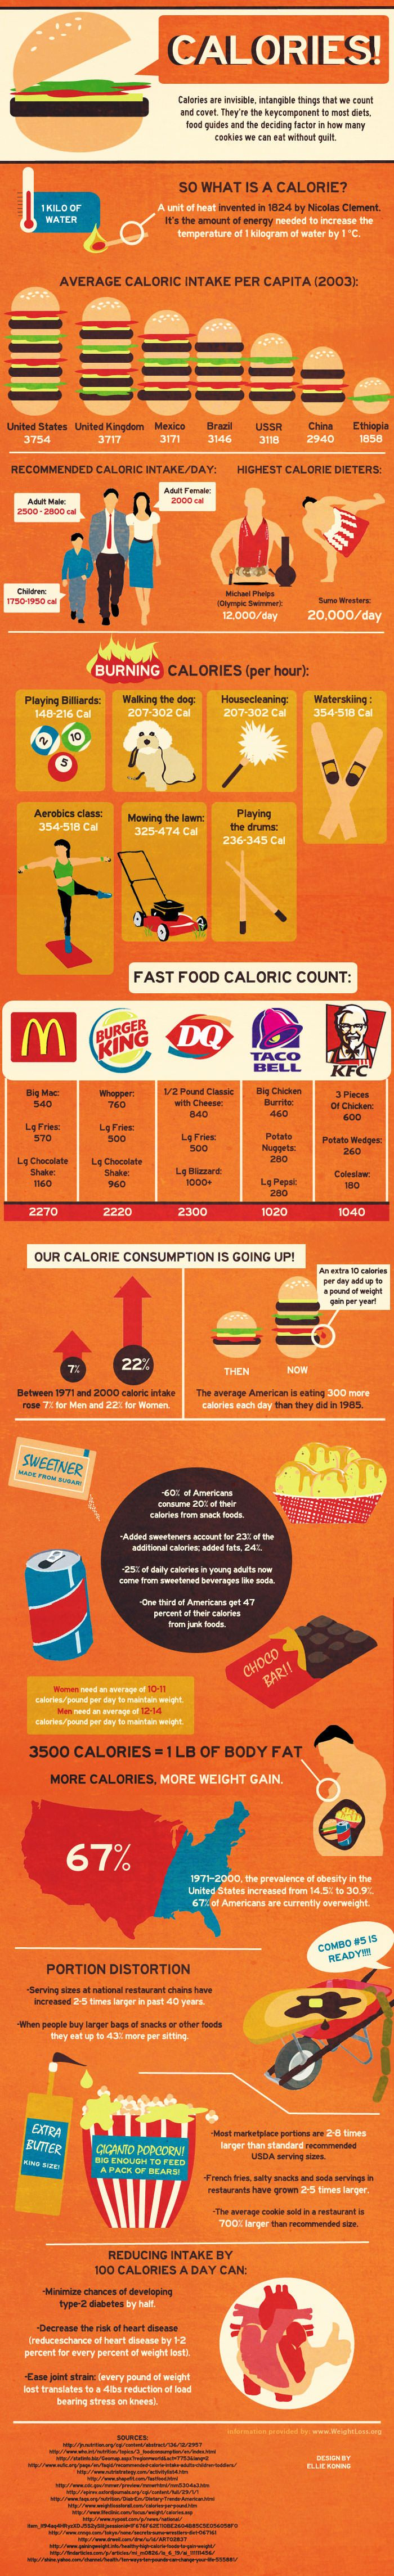 The daily calorie calculator gives an estimate of daily calories needed according to activity level.